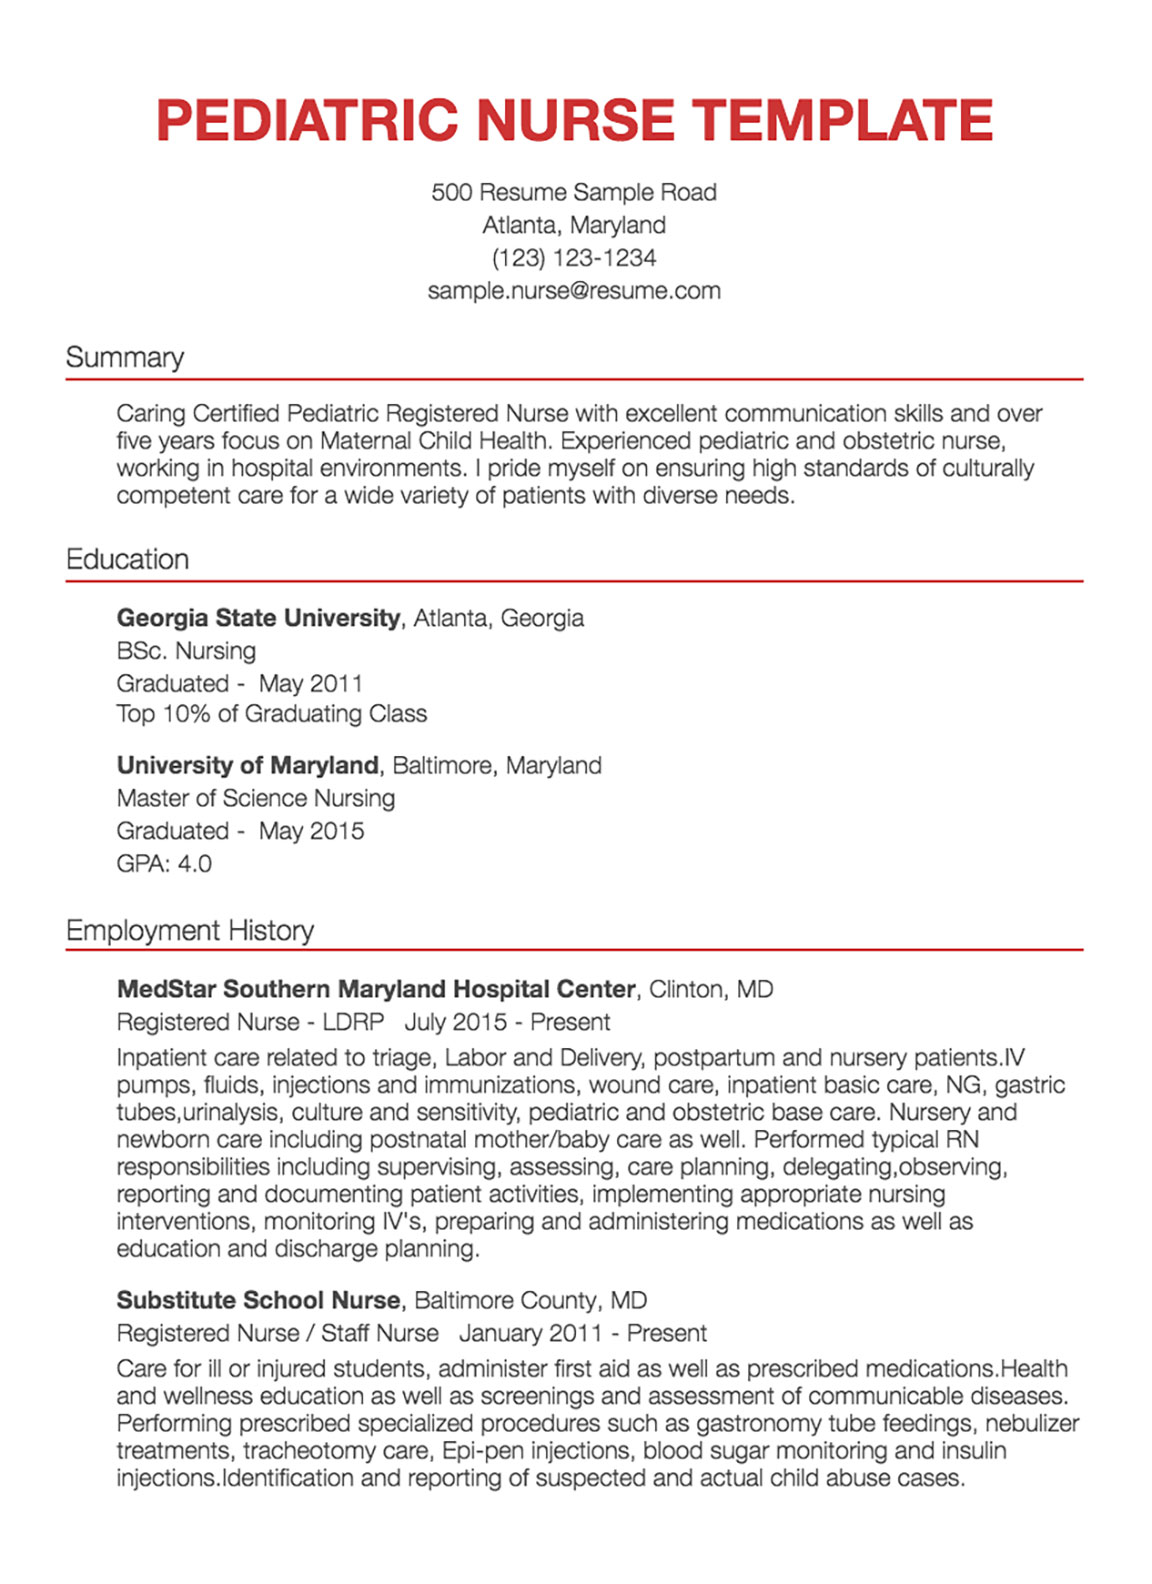 Pediatric Registered Nurse Example Nursing Consultant Resume